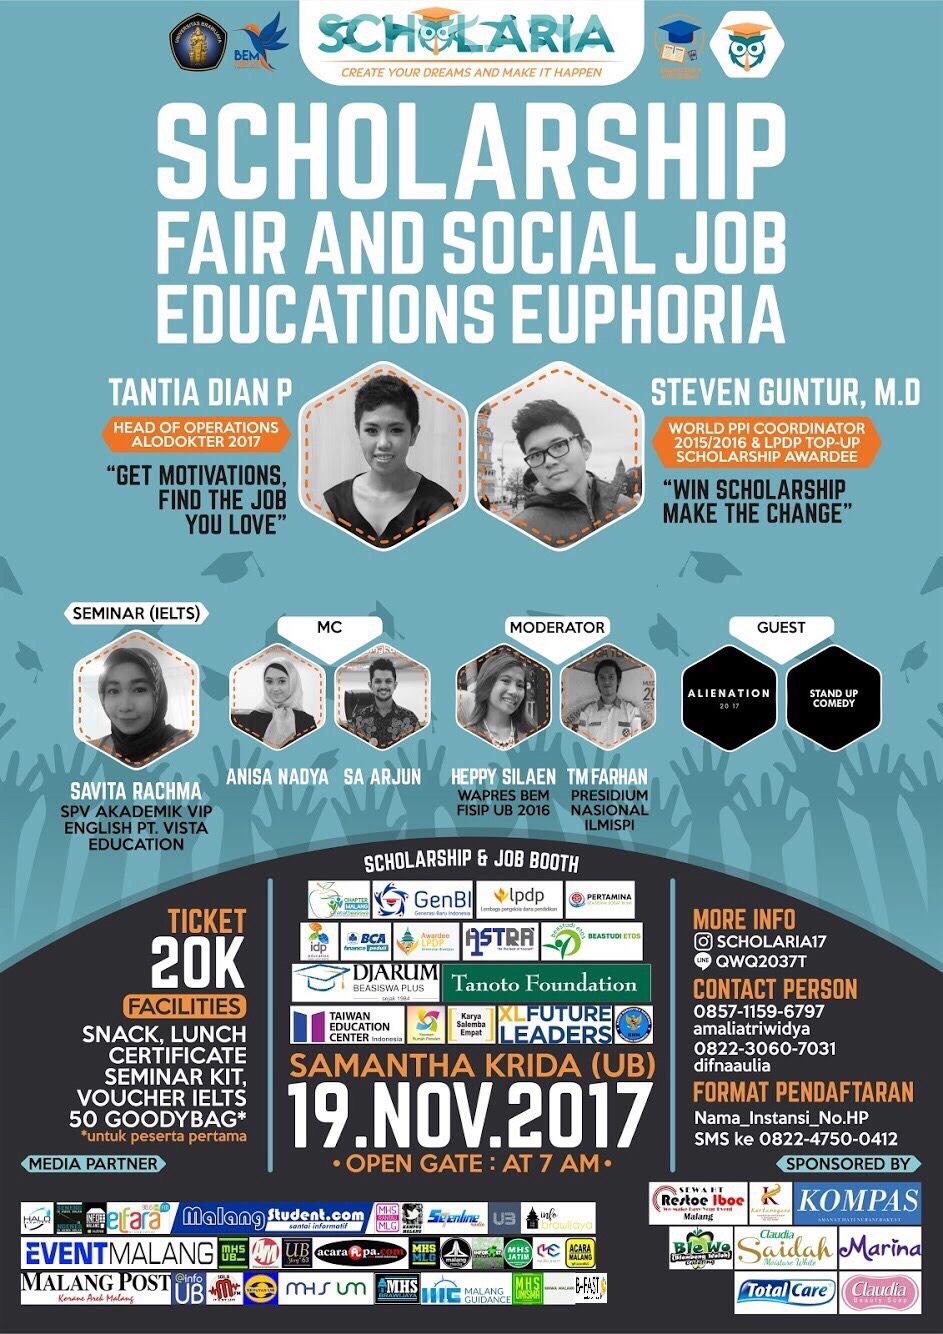 SCHOLARIA 2017 – Scholarship Fair and Social Job Educations Euphoria